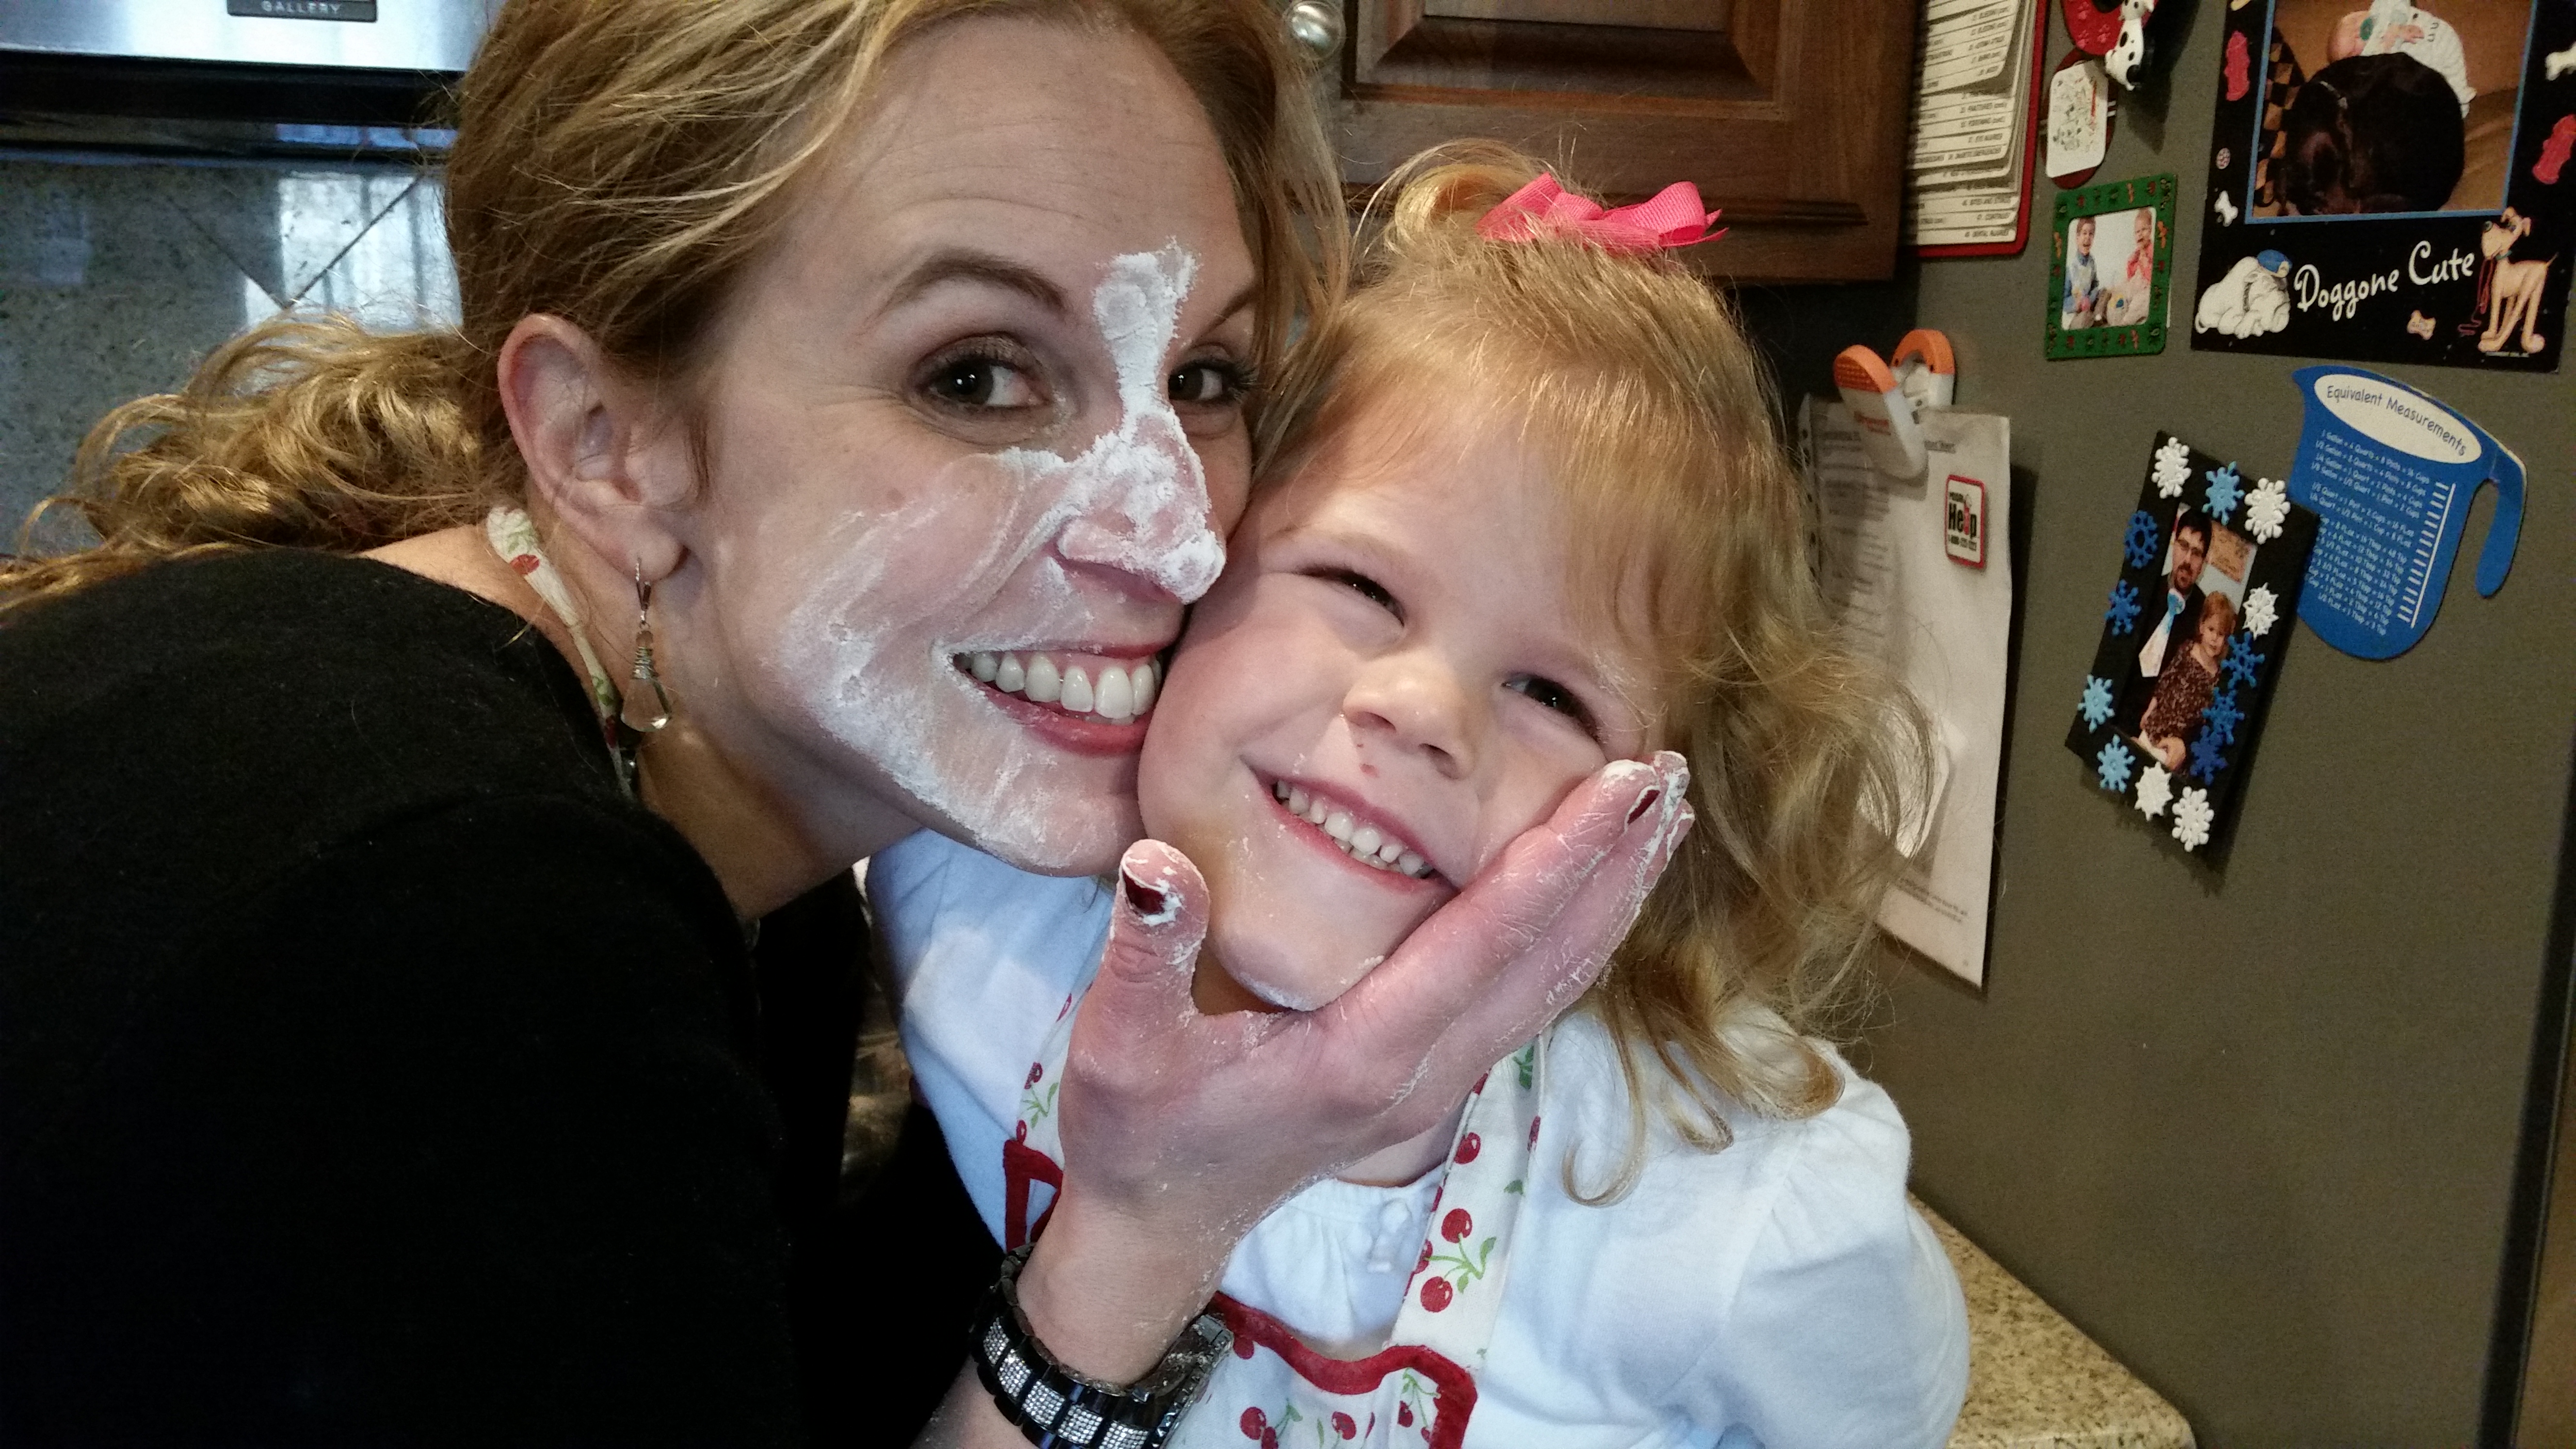 Christmas cookie baking? Sometimes making messes in the kitchen is worth it...so very worth it! Memories, fun, and special family time? Here is how to make it a win for everyone!